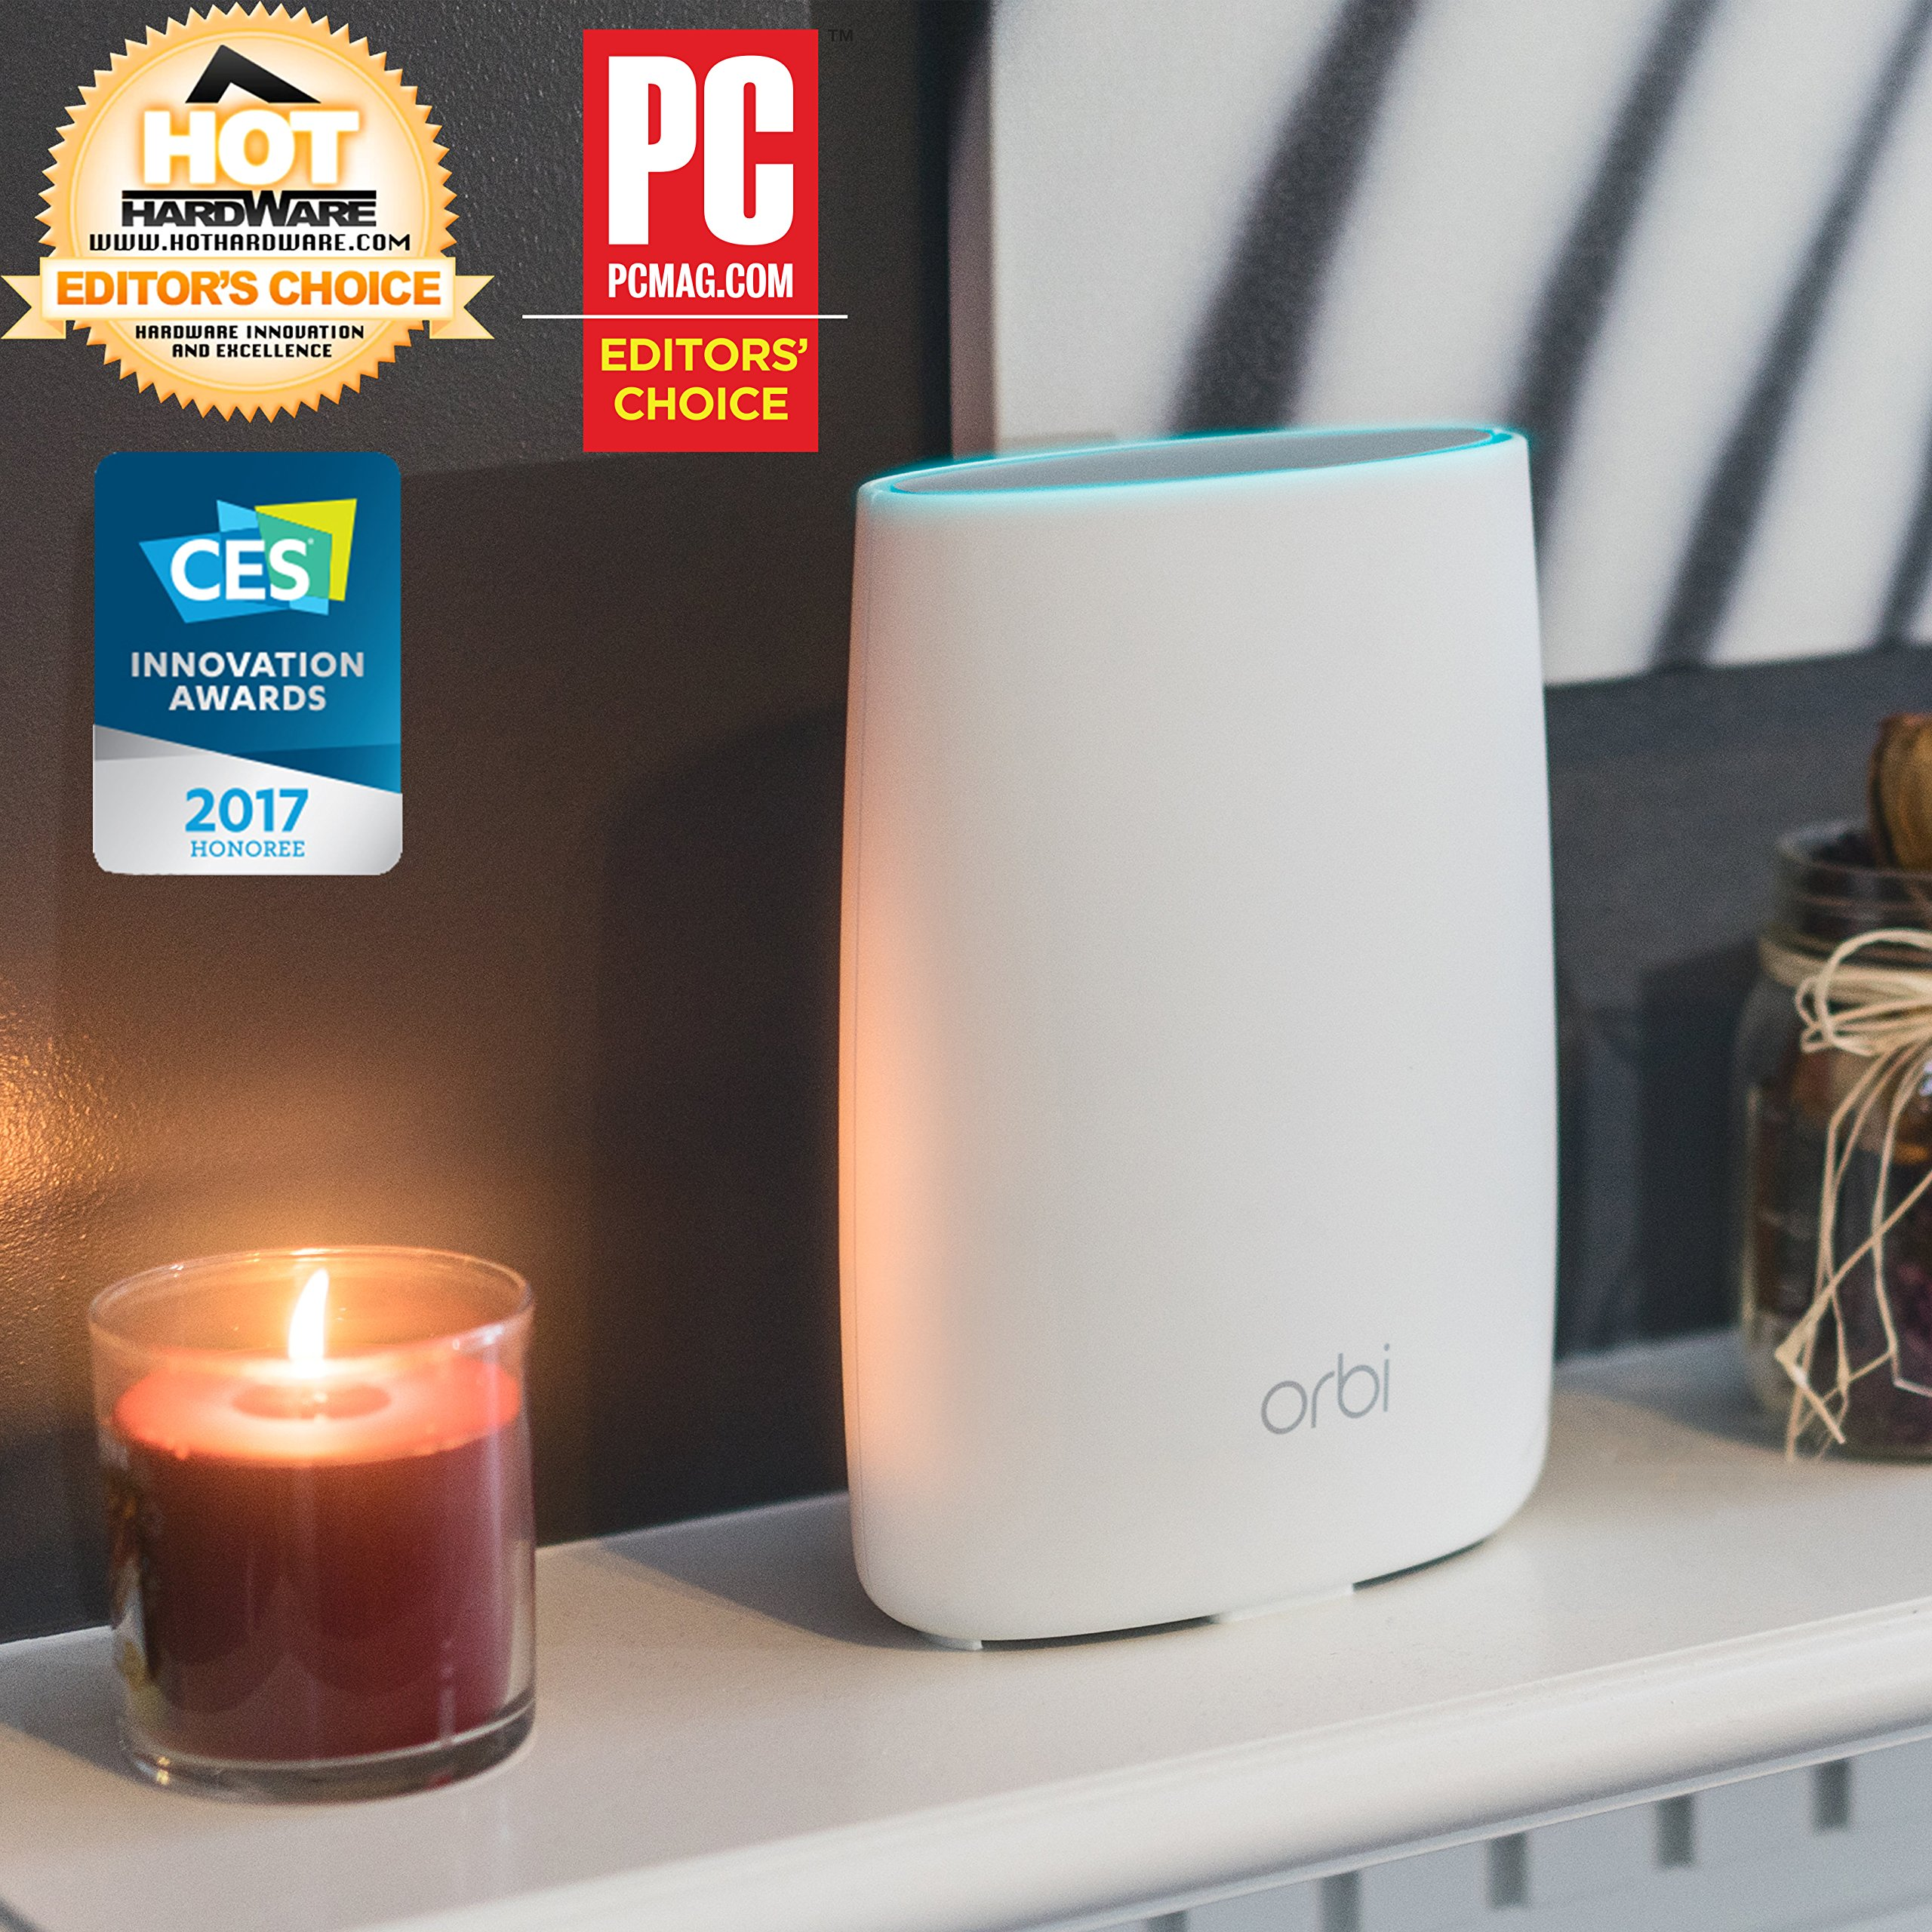 NETGEAR Orbi Whole Home Mesh WiFi System with Tri-band – Eliminate WiFi dead zones, Simple setup, Single network name, Works with Amazon Alexa, Up to 5,000 sqft, AC3000 (Set of 2) by NETGEAR (Image #2)